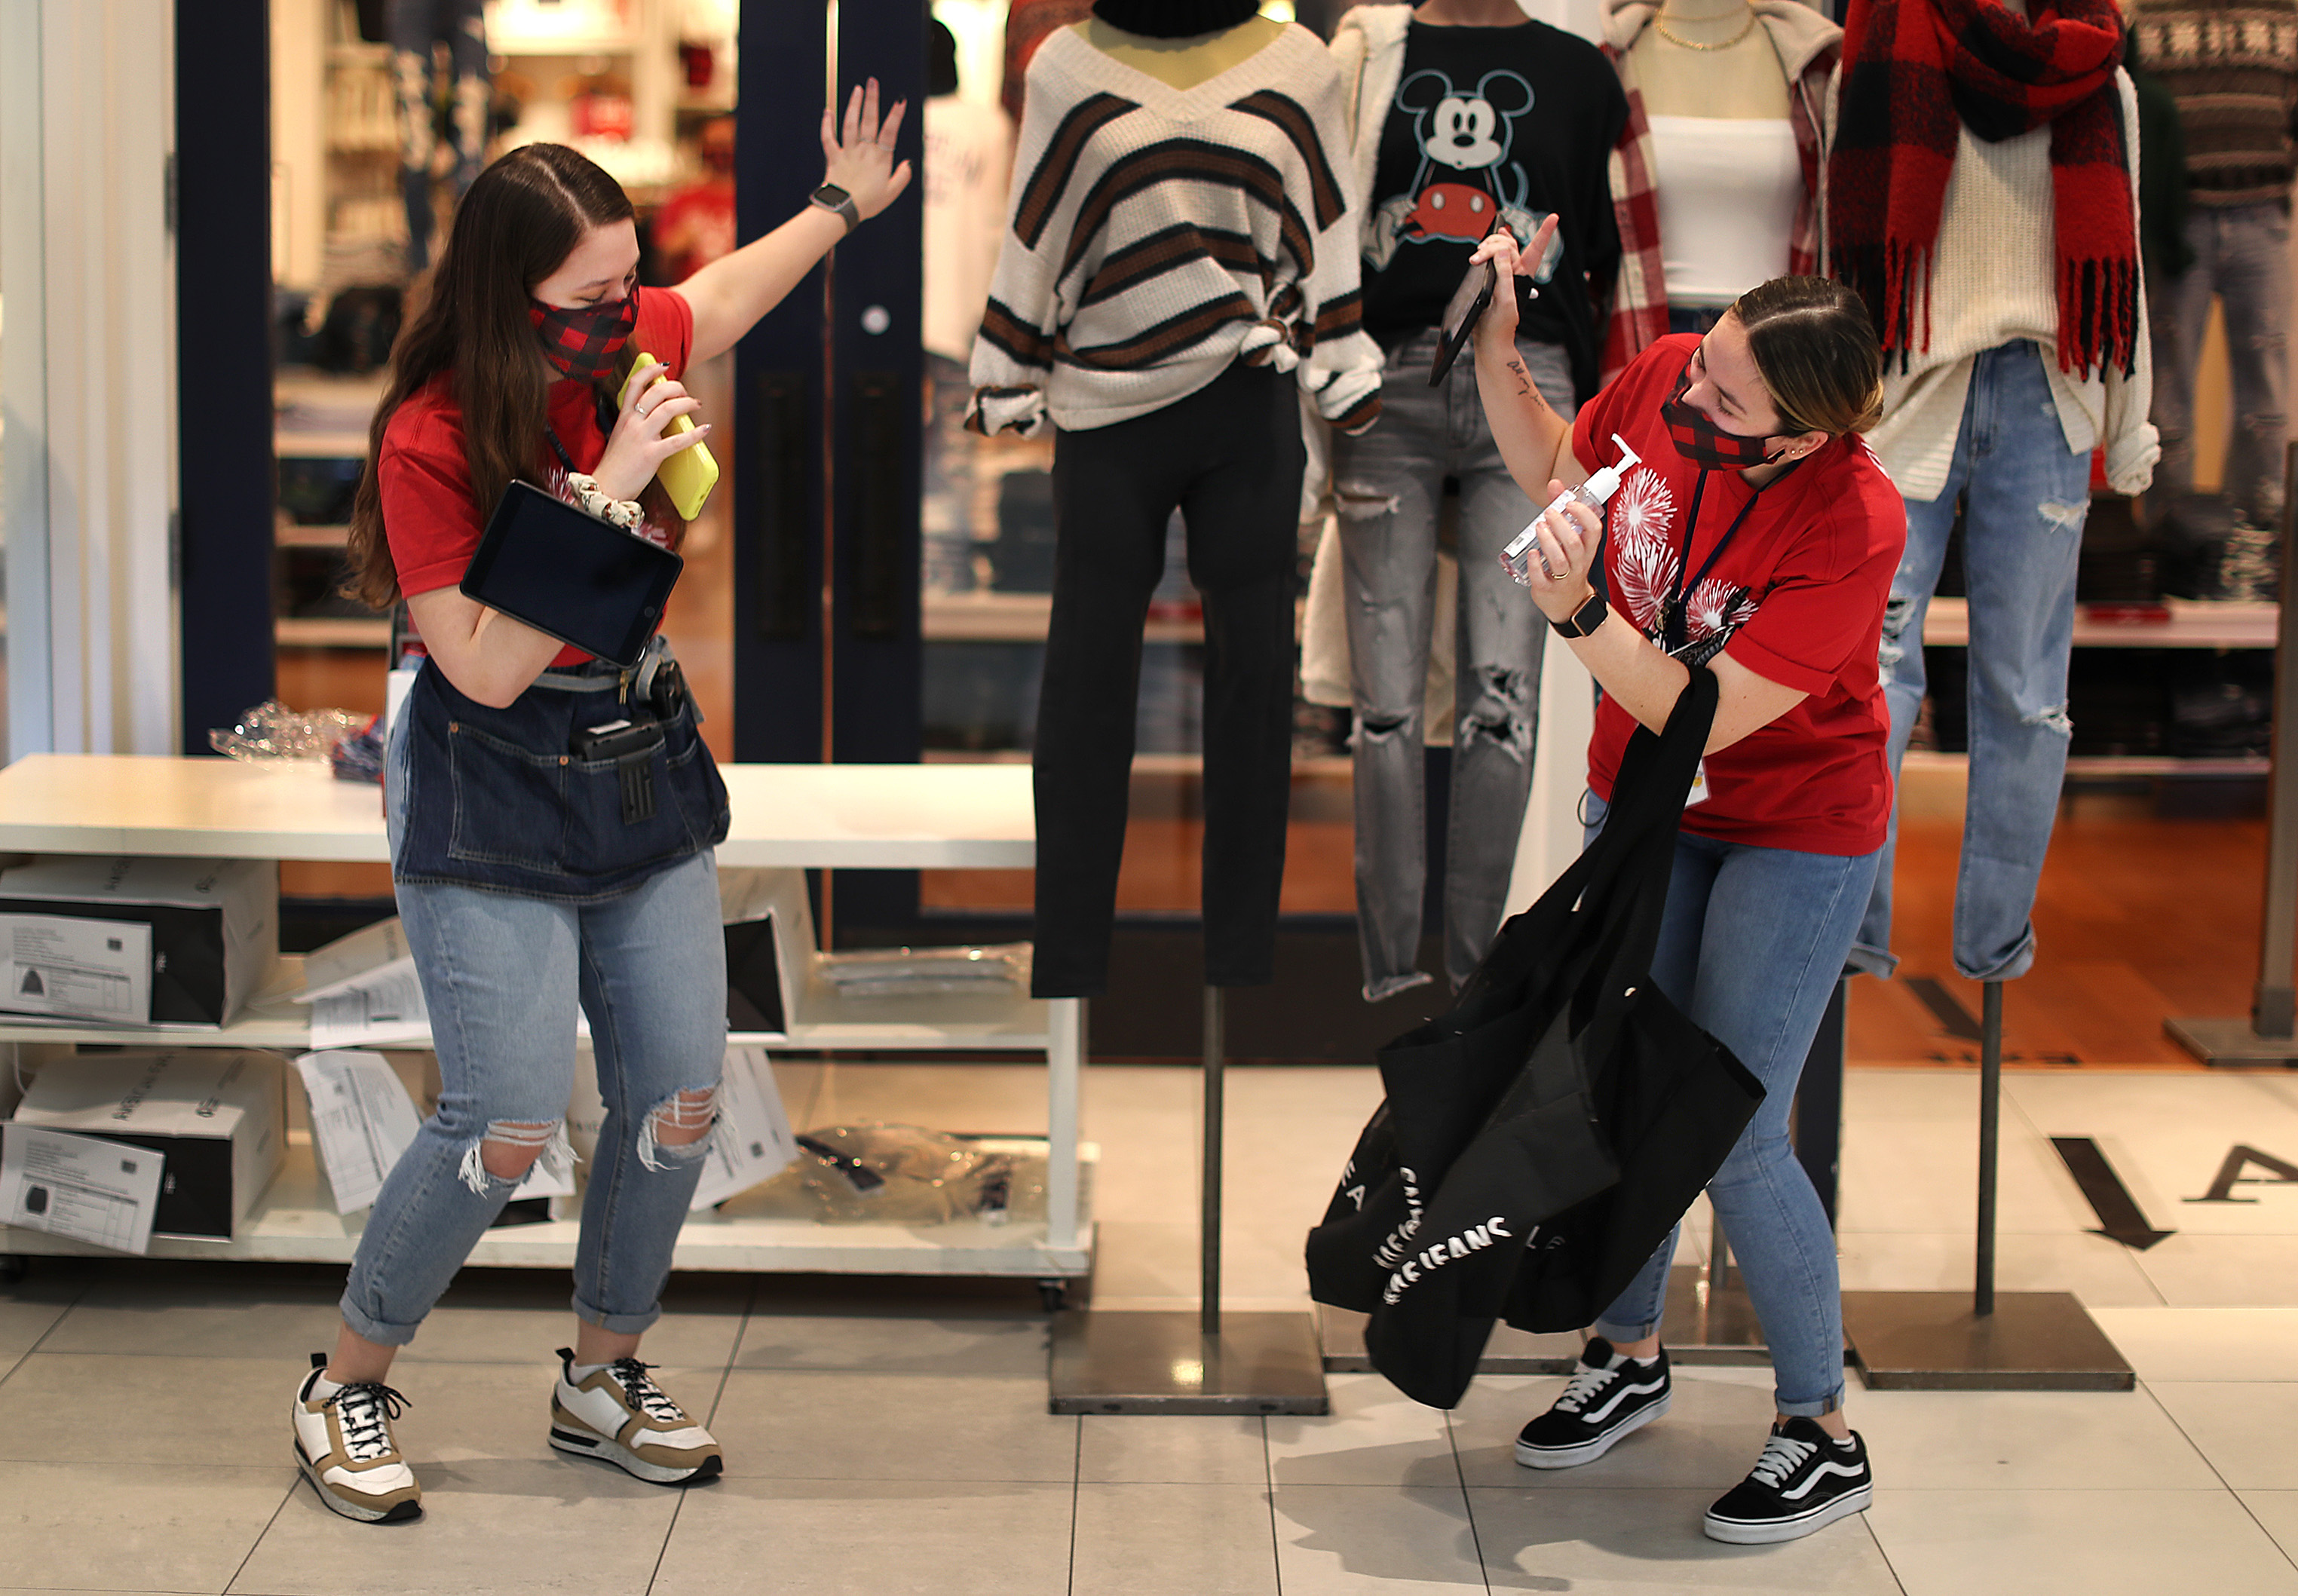 Numbers of shoppers out on Black Friday down from previous years - The  Boston Globe